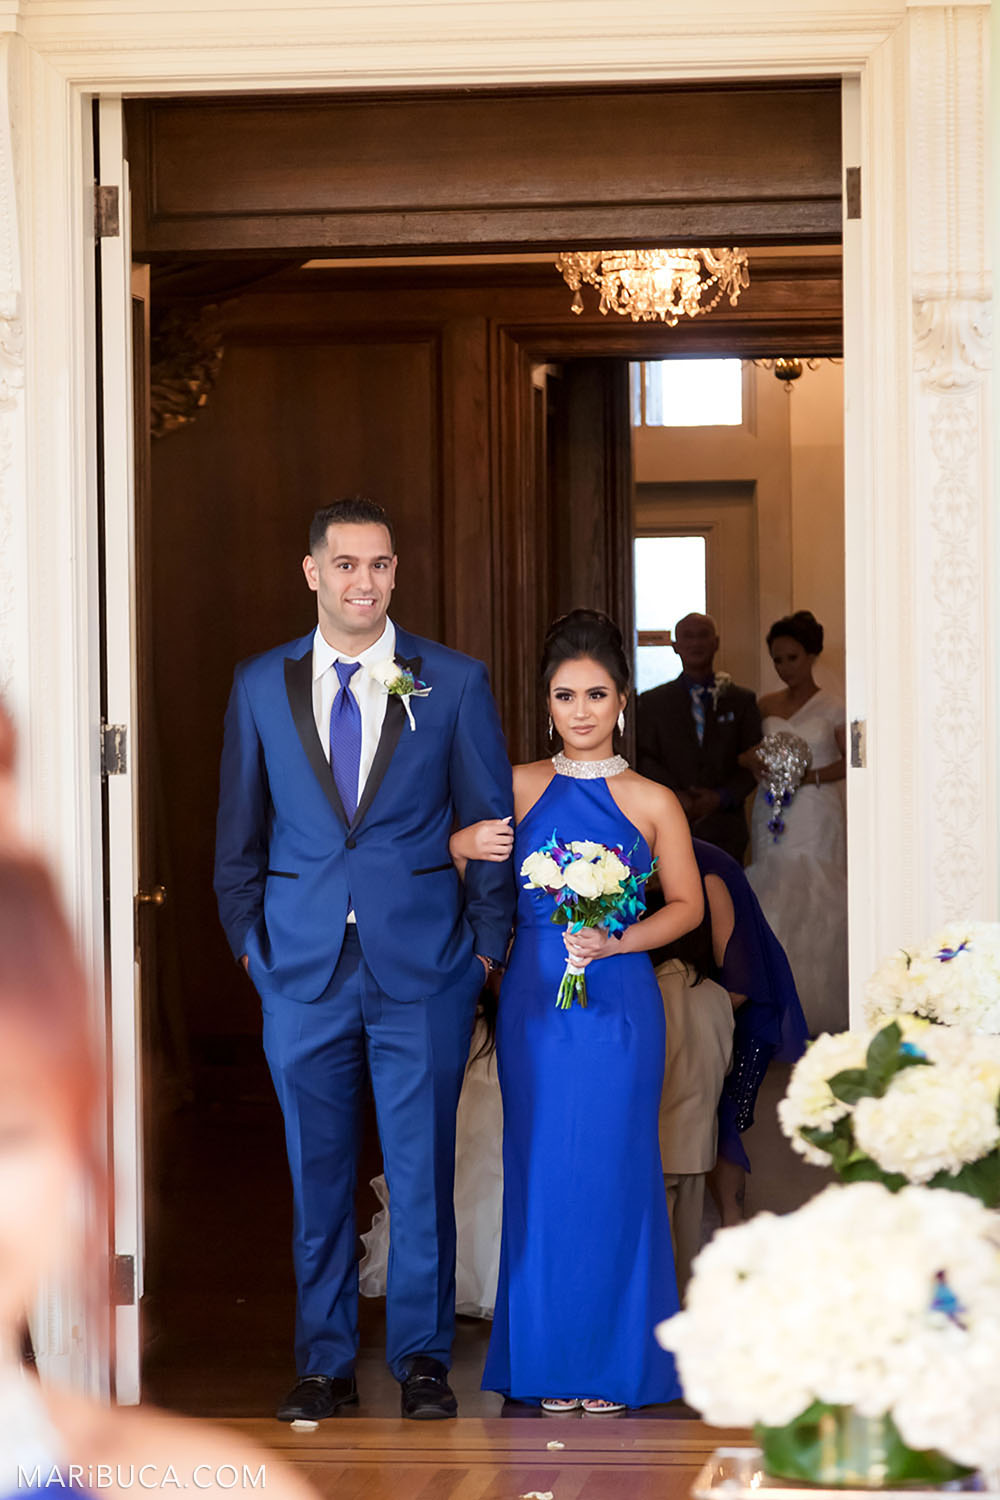 Groomsmen and bridesmaid with blue cloths are going down the aisle in the Dining room, Kohl Mansion Wedding ceremony